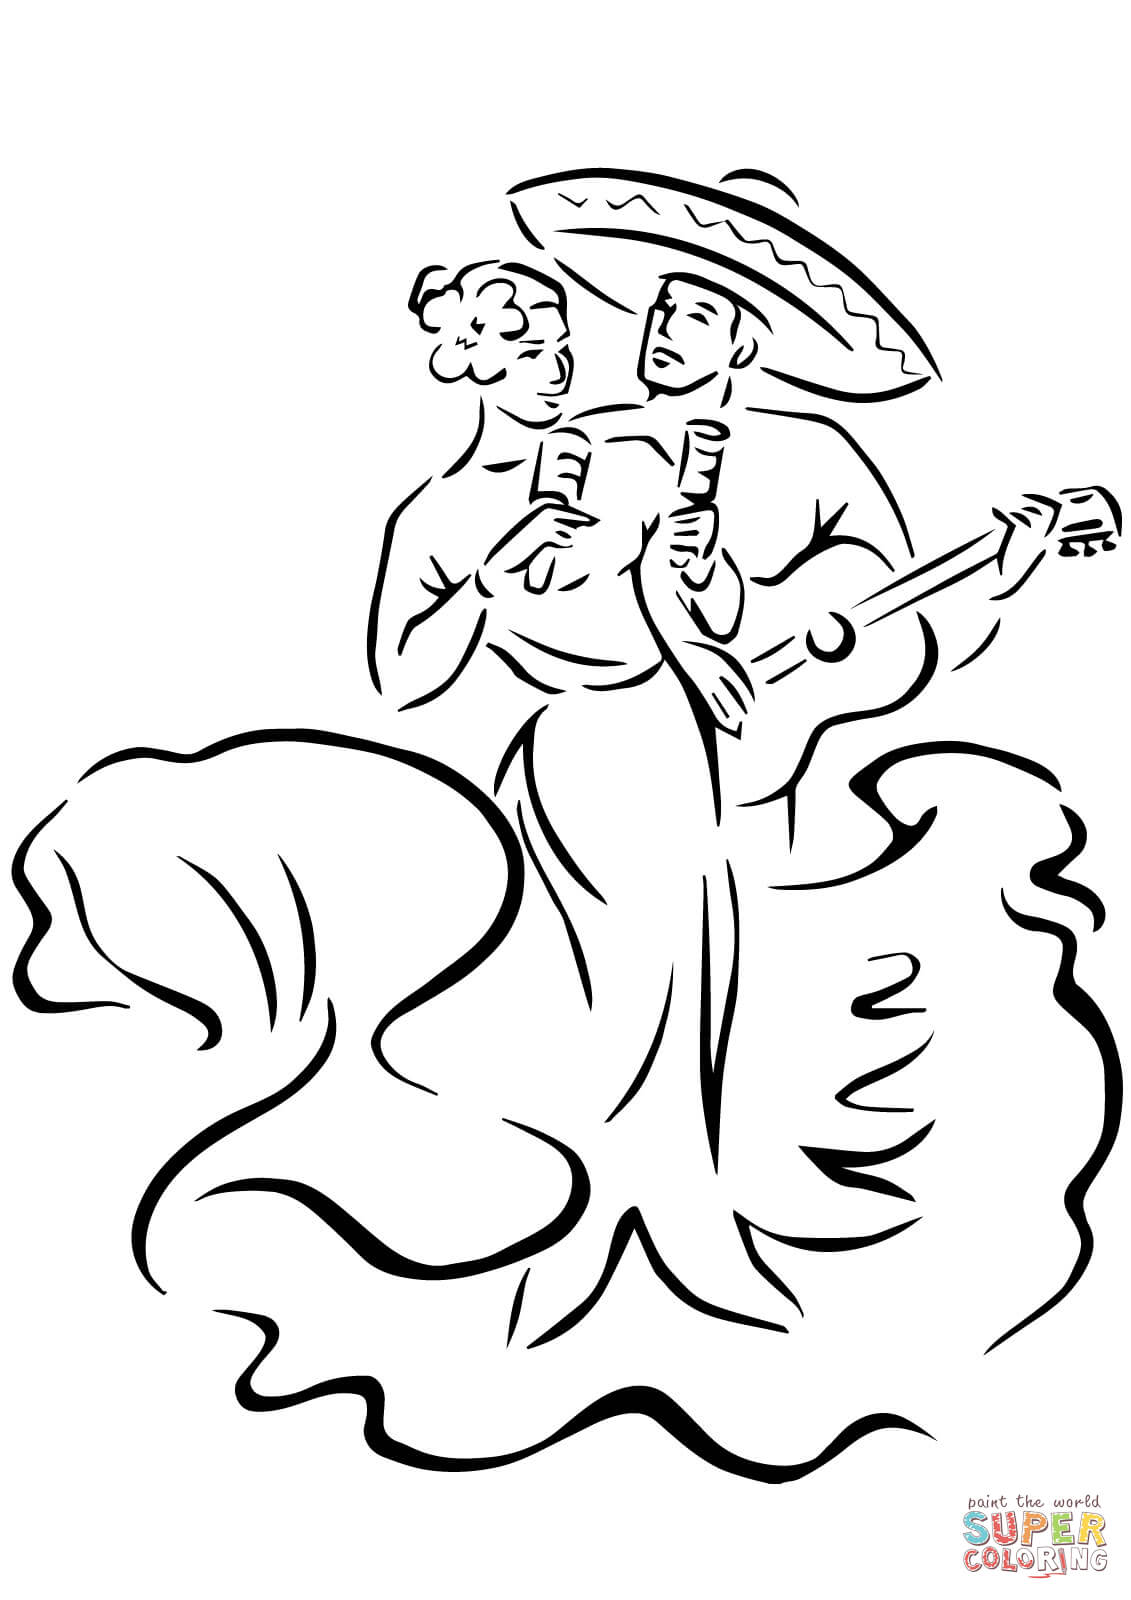 Cinco De Mayo Printable Coloring Pages